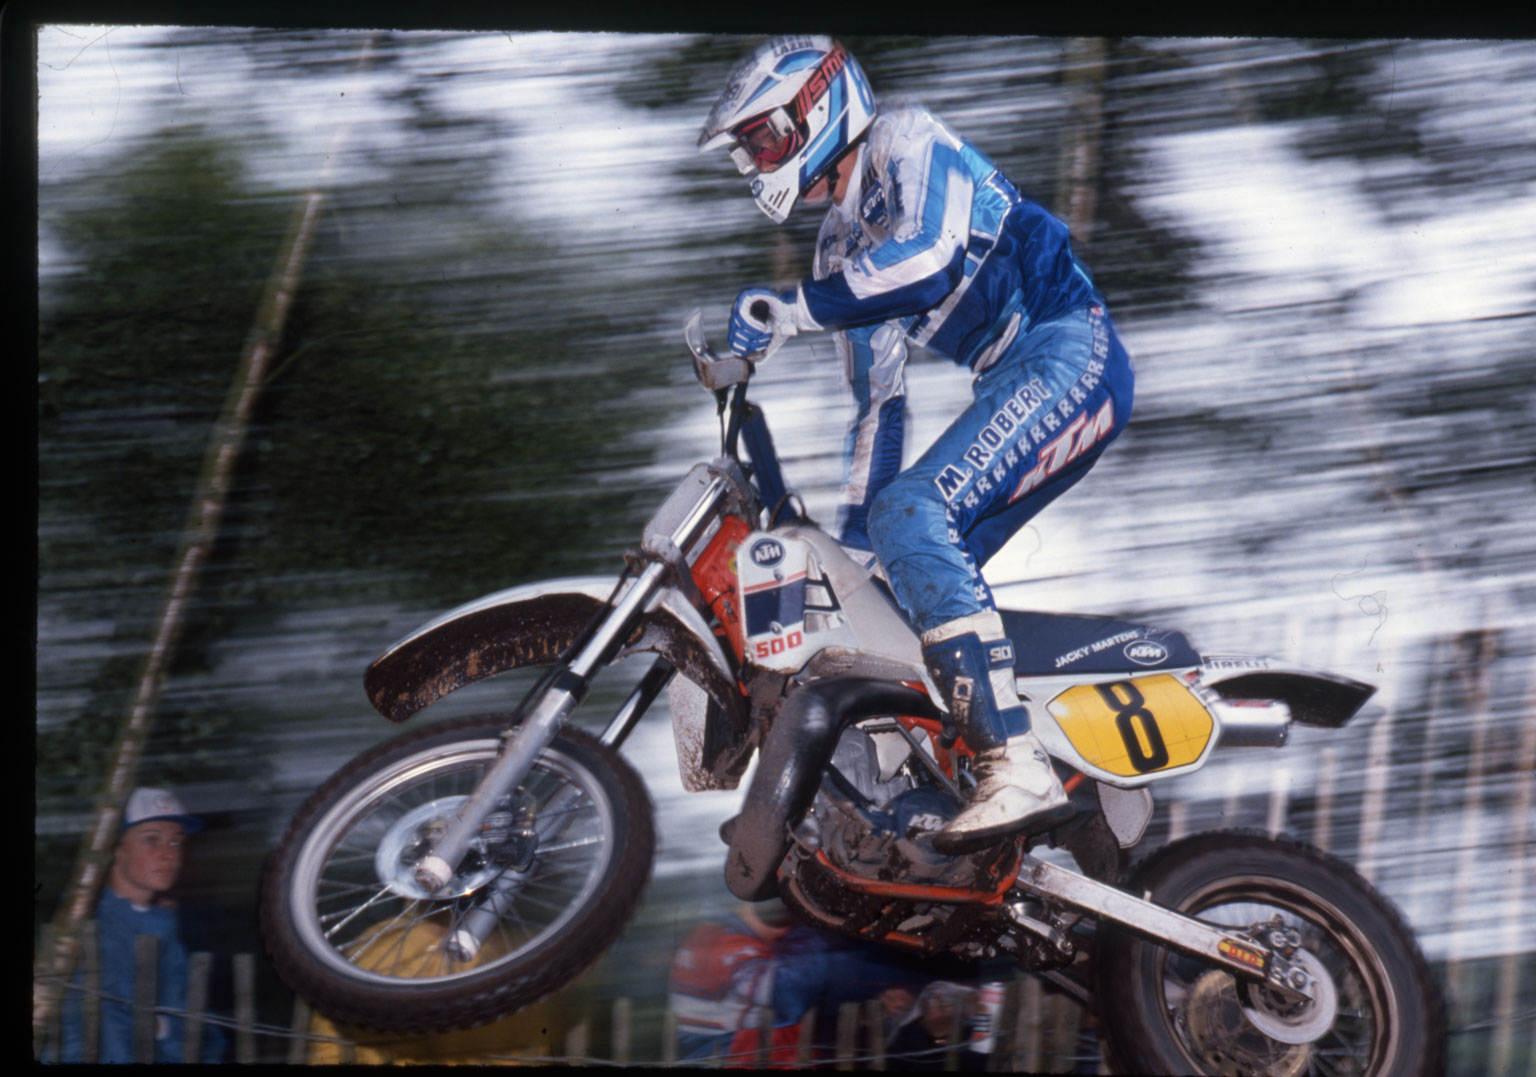 Martens at Hawkstone at the end of the 1980s